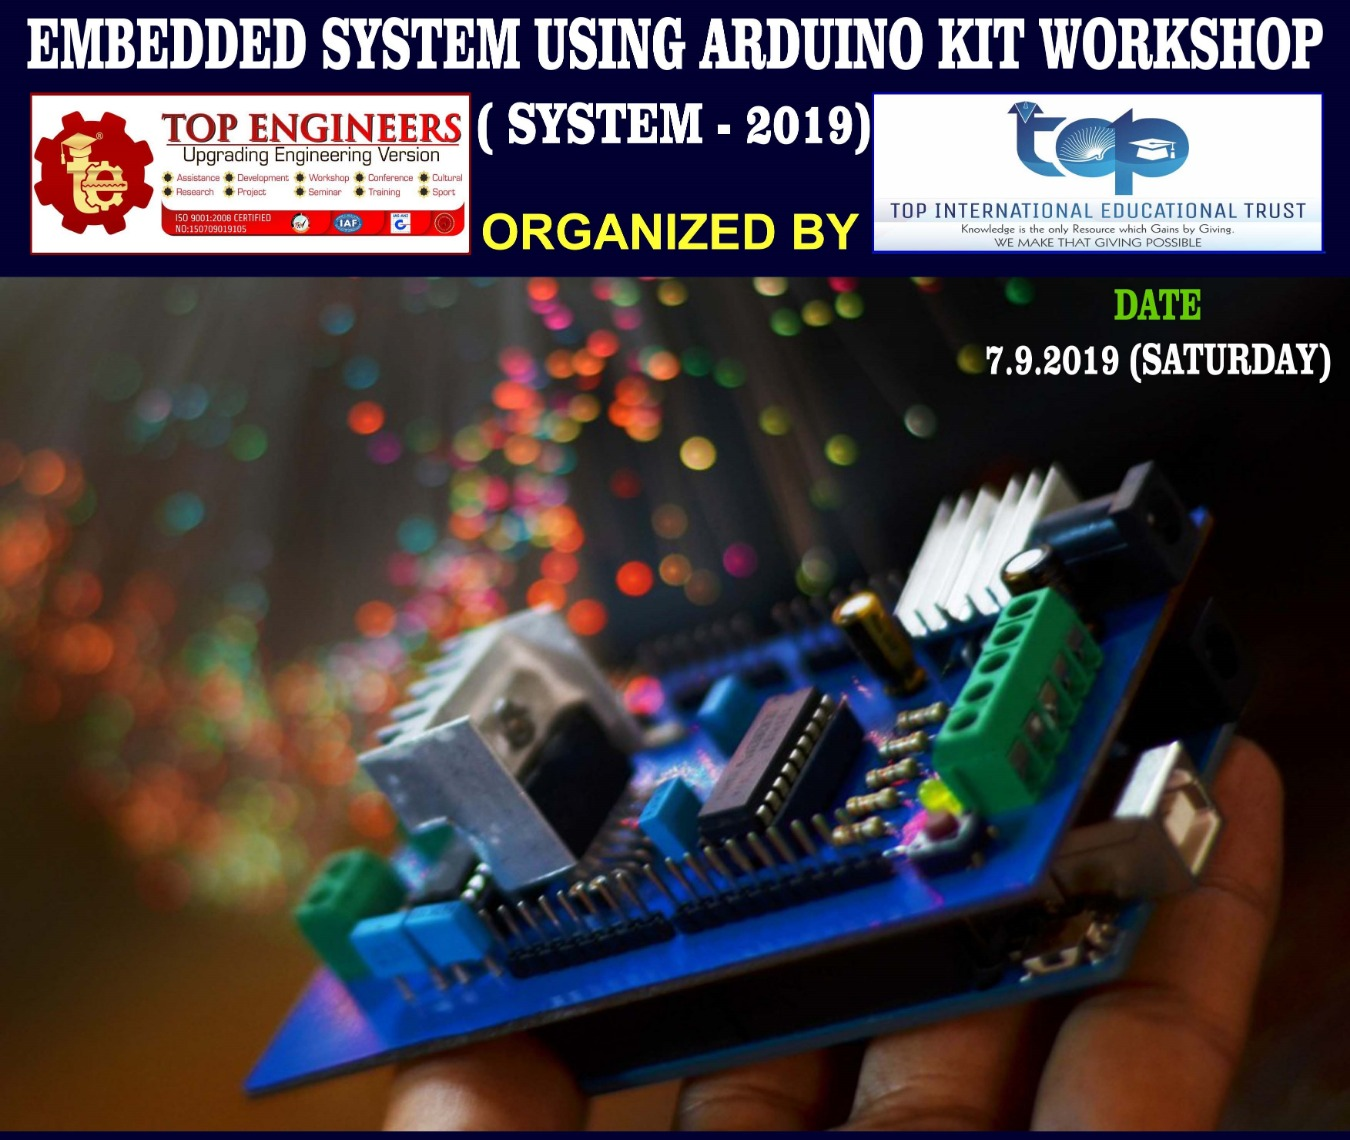 EMBEDDED SYSTEM USING ARDUINO KIT WORKSHOP ( SYSTEM - 2019) Tickets by  Ercess Live, 7 Sep, 2019, Chennai Event